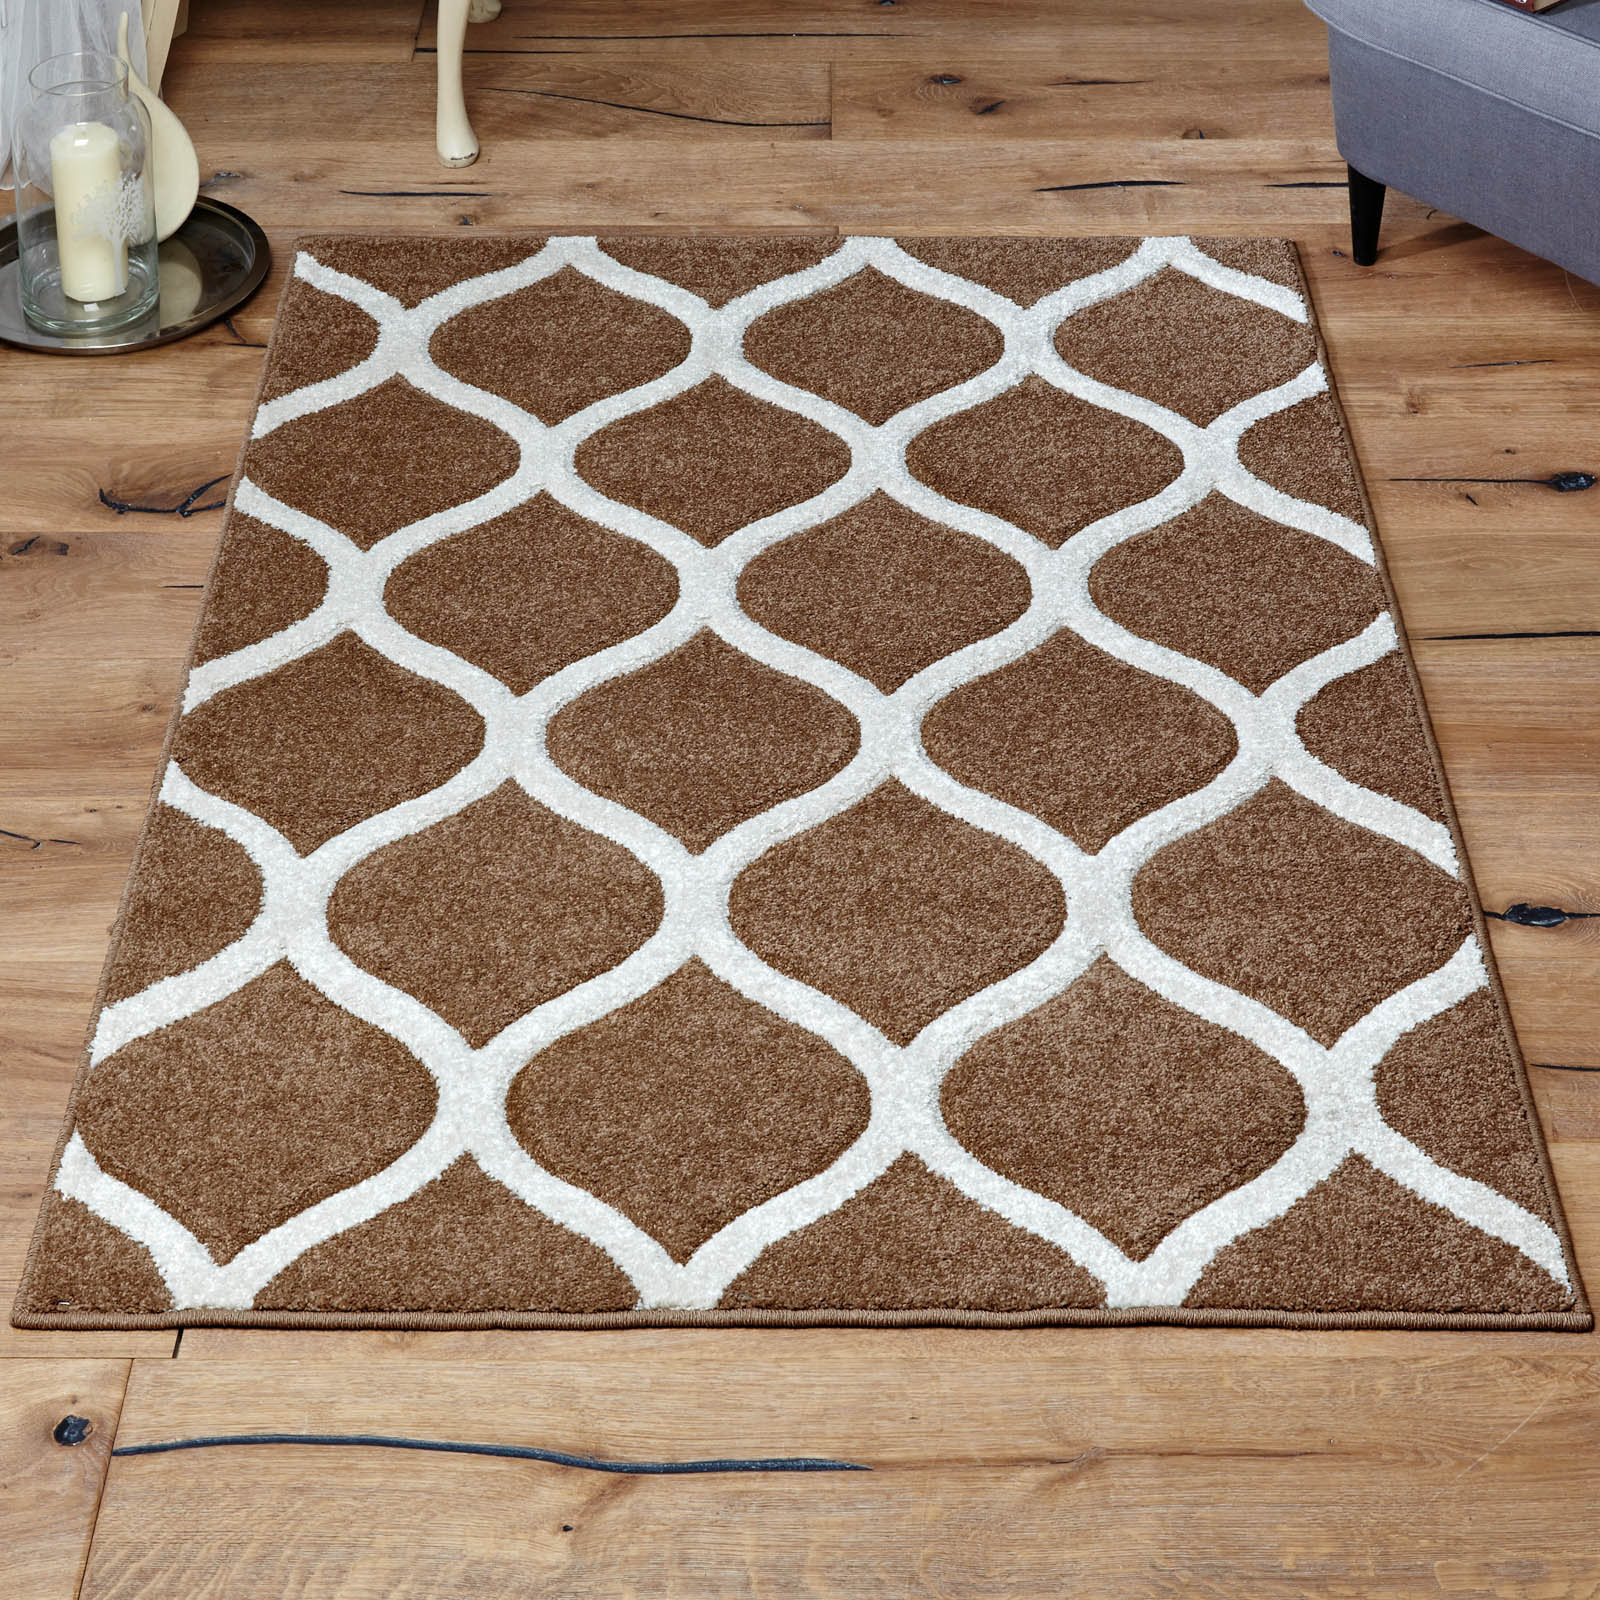 Viva Rugs 1095 J in Beige and Ivory